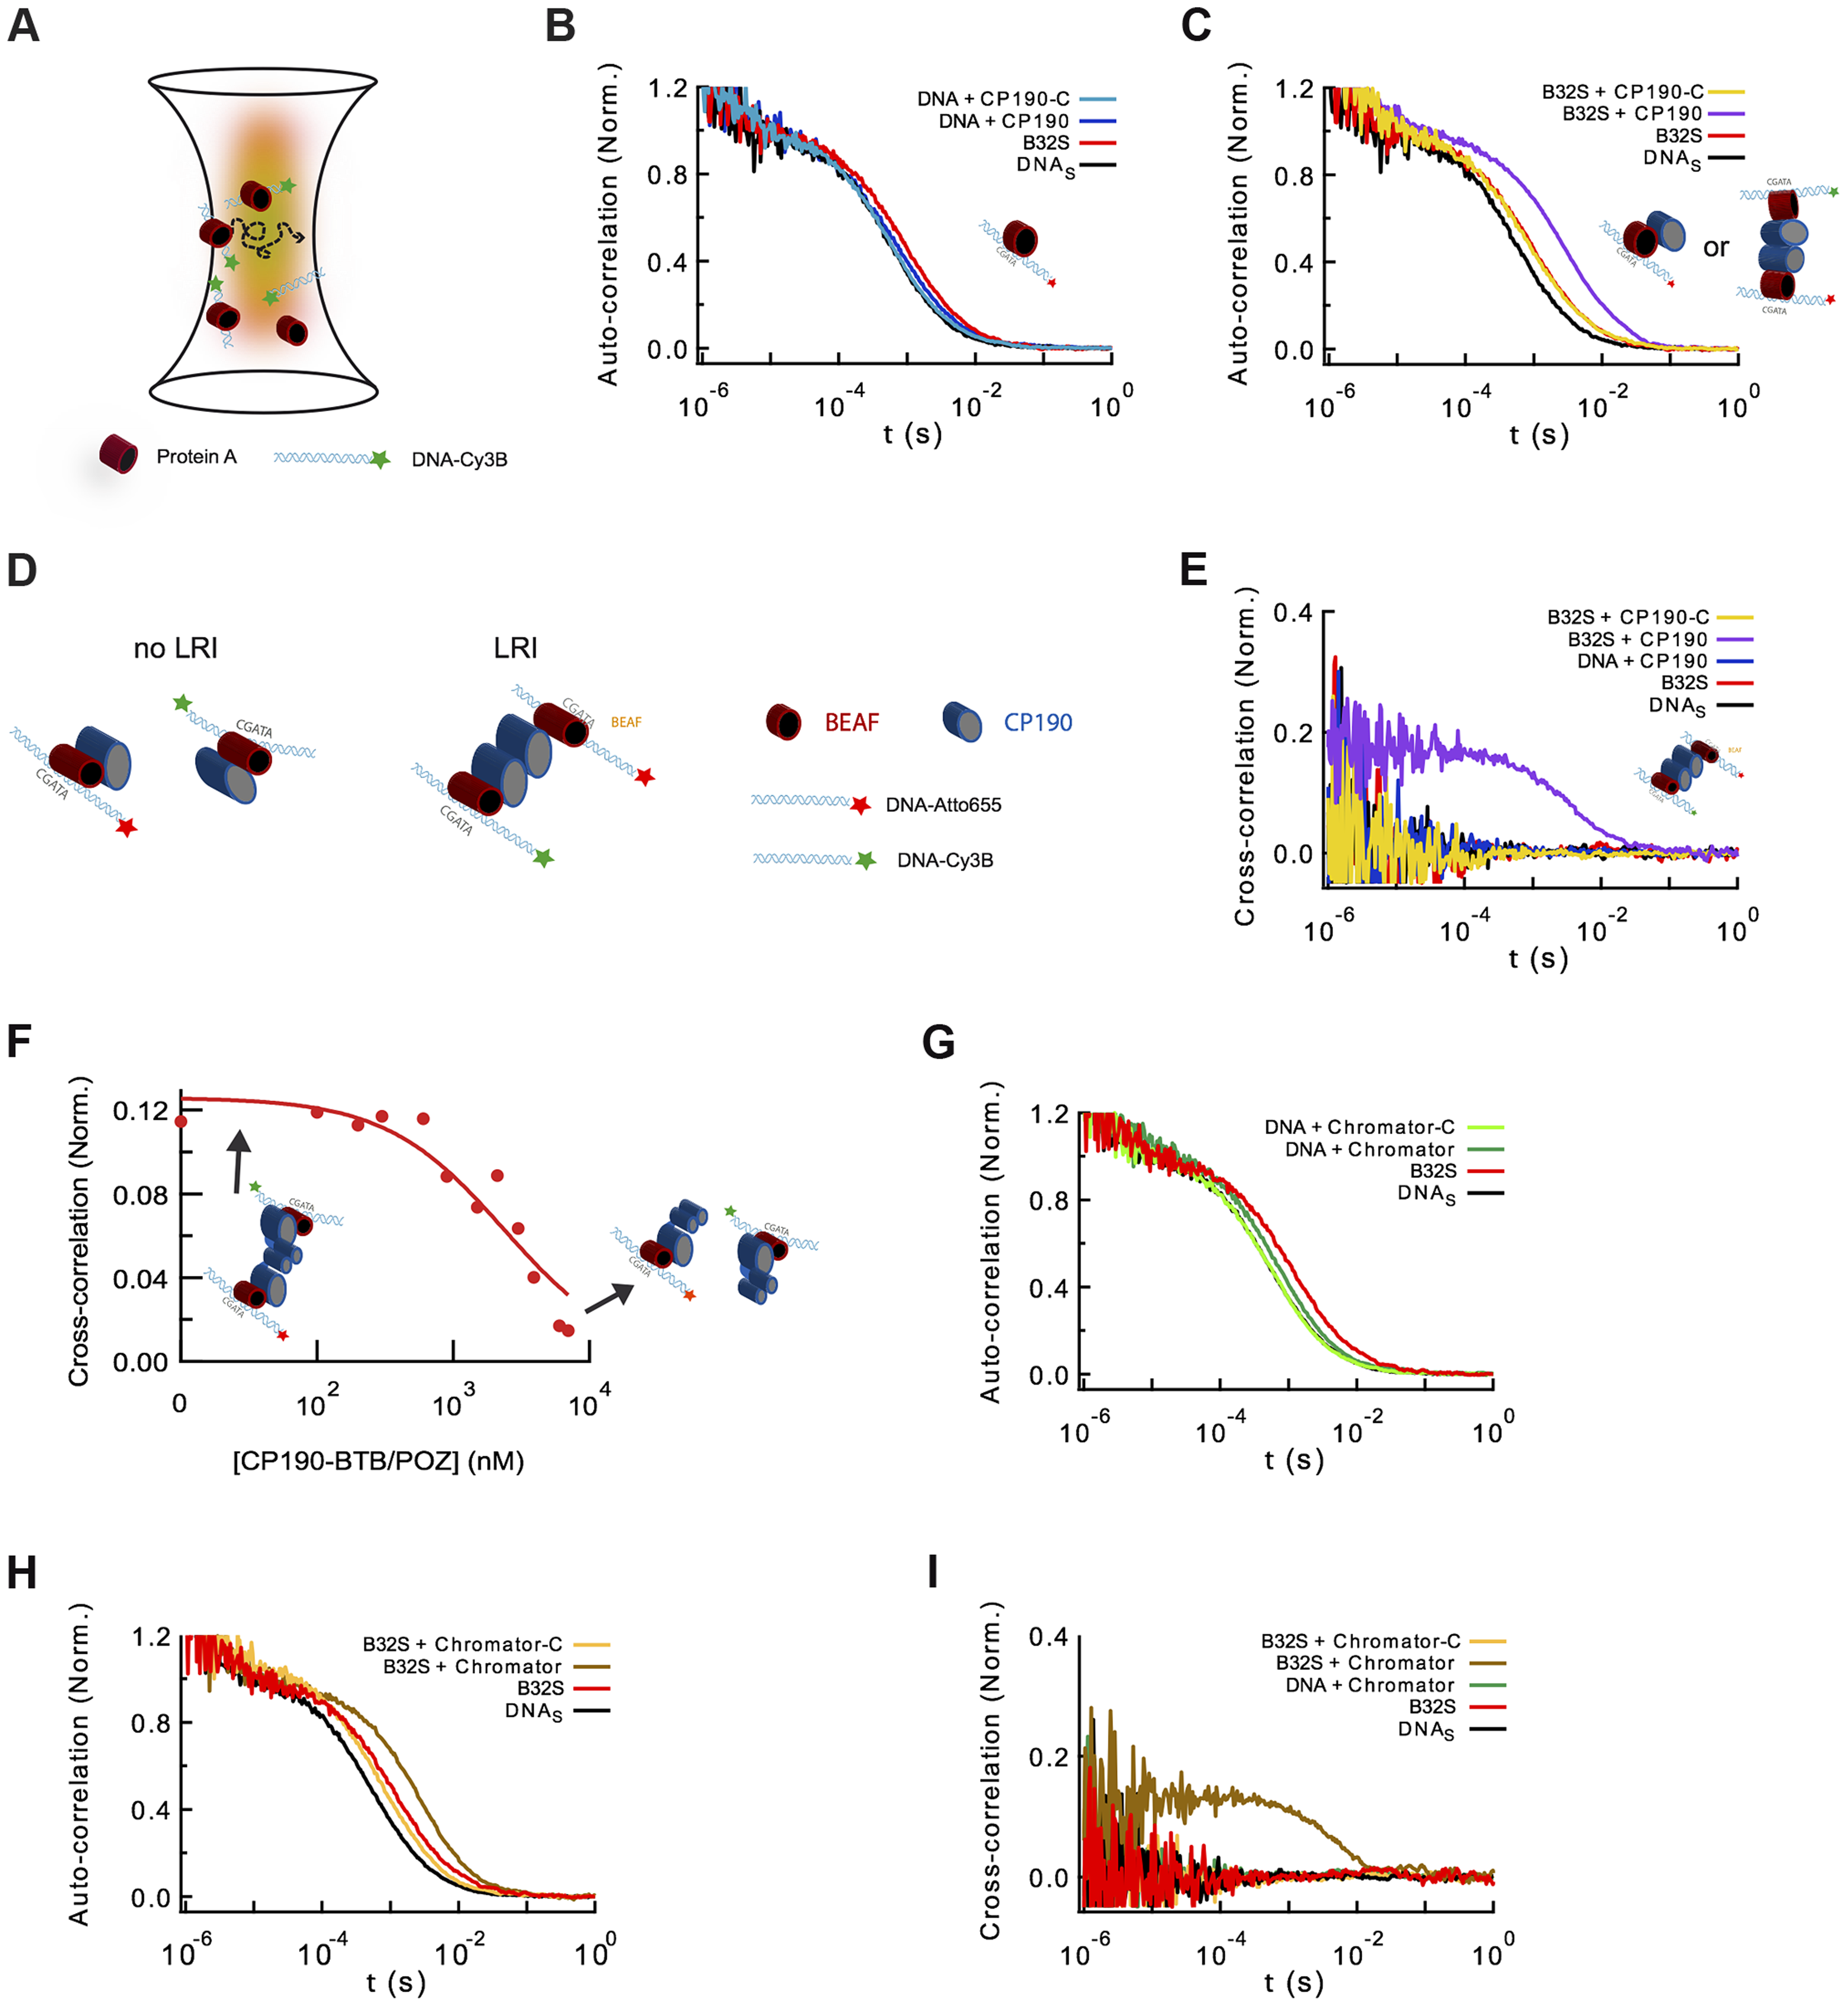 Formation of long-range interactions by insulator proteins.